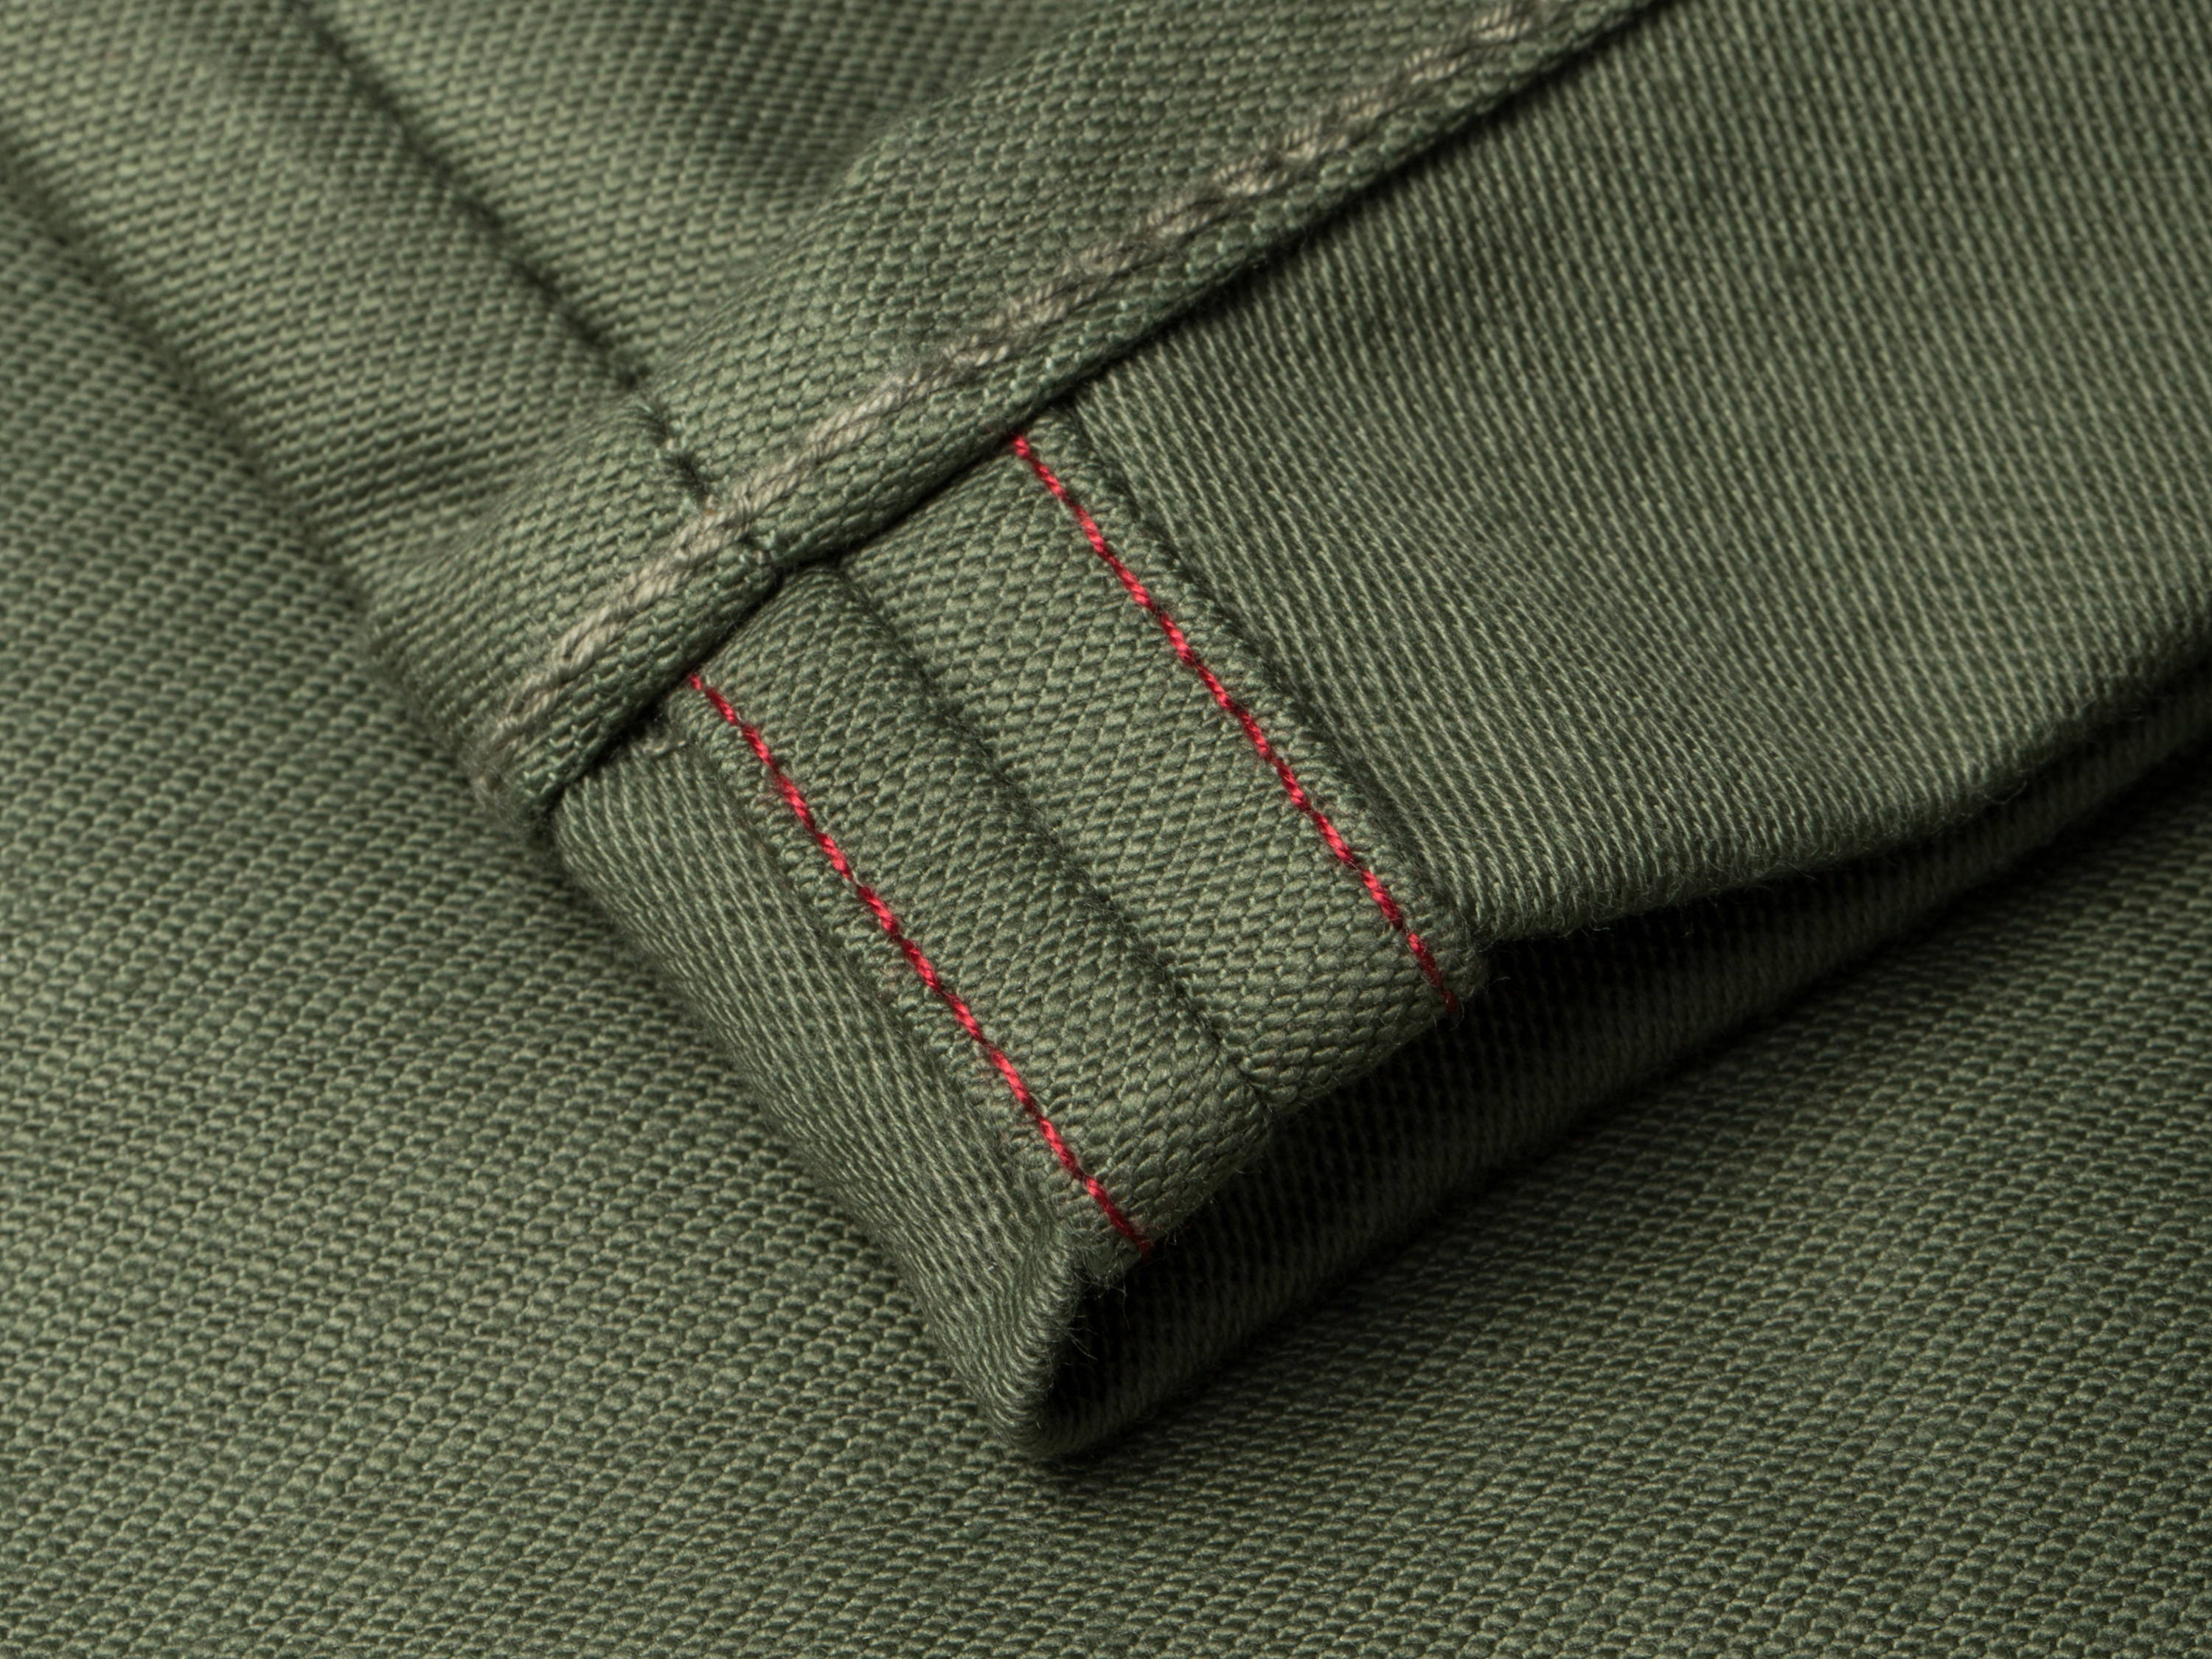 BENZAK | AW20 chino army green military  twill Japan  vintage style